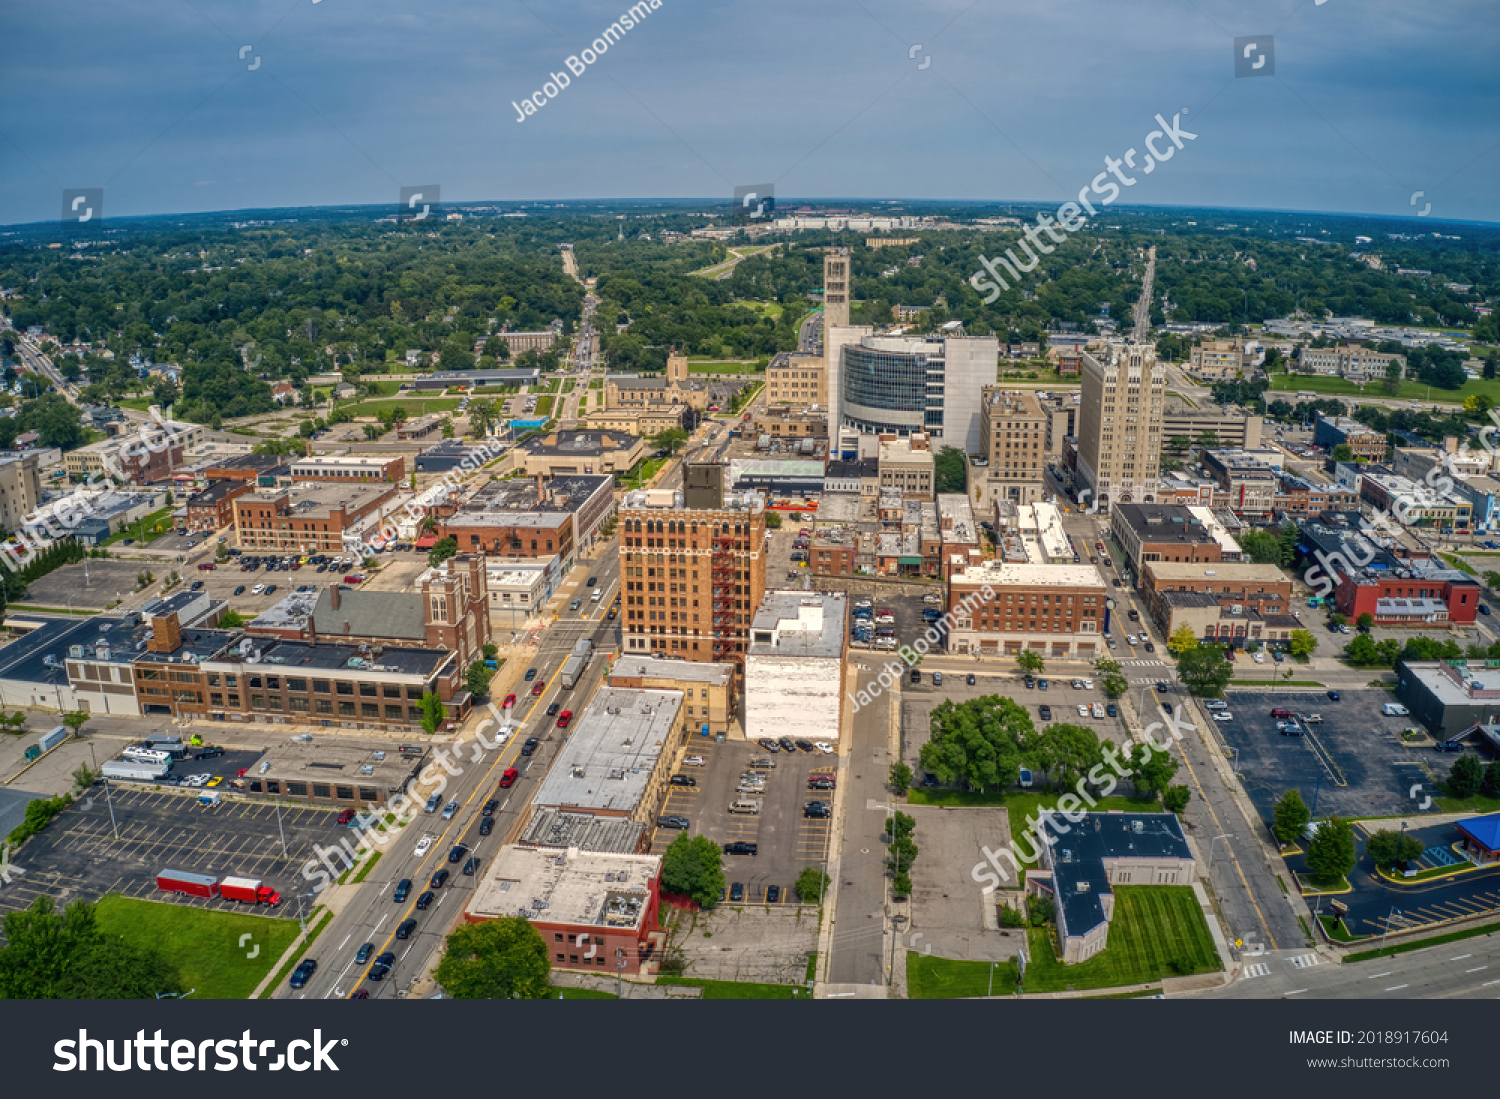 Aerial View of Downtown Pontiac, Michigan during Summer #2018917604